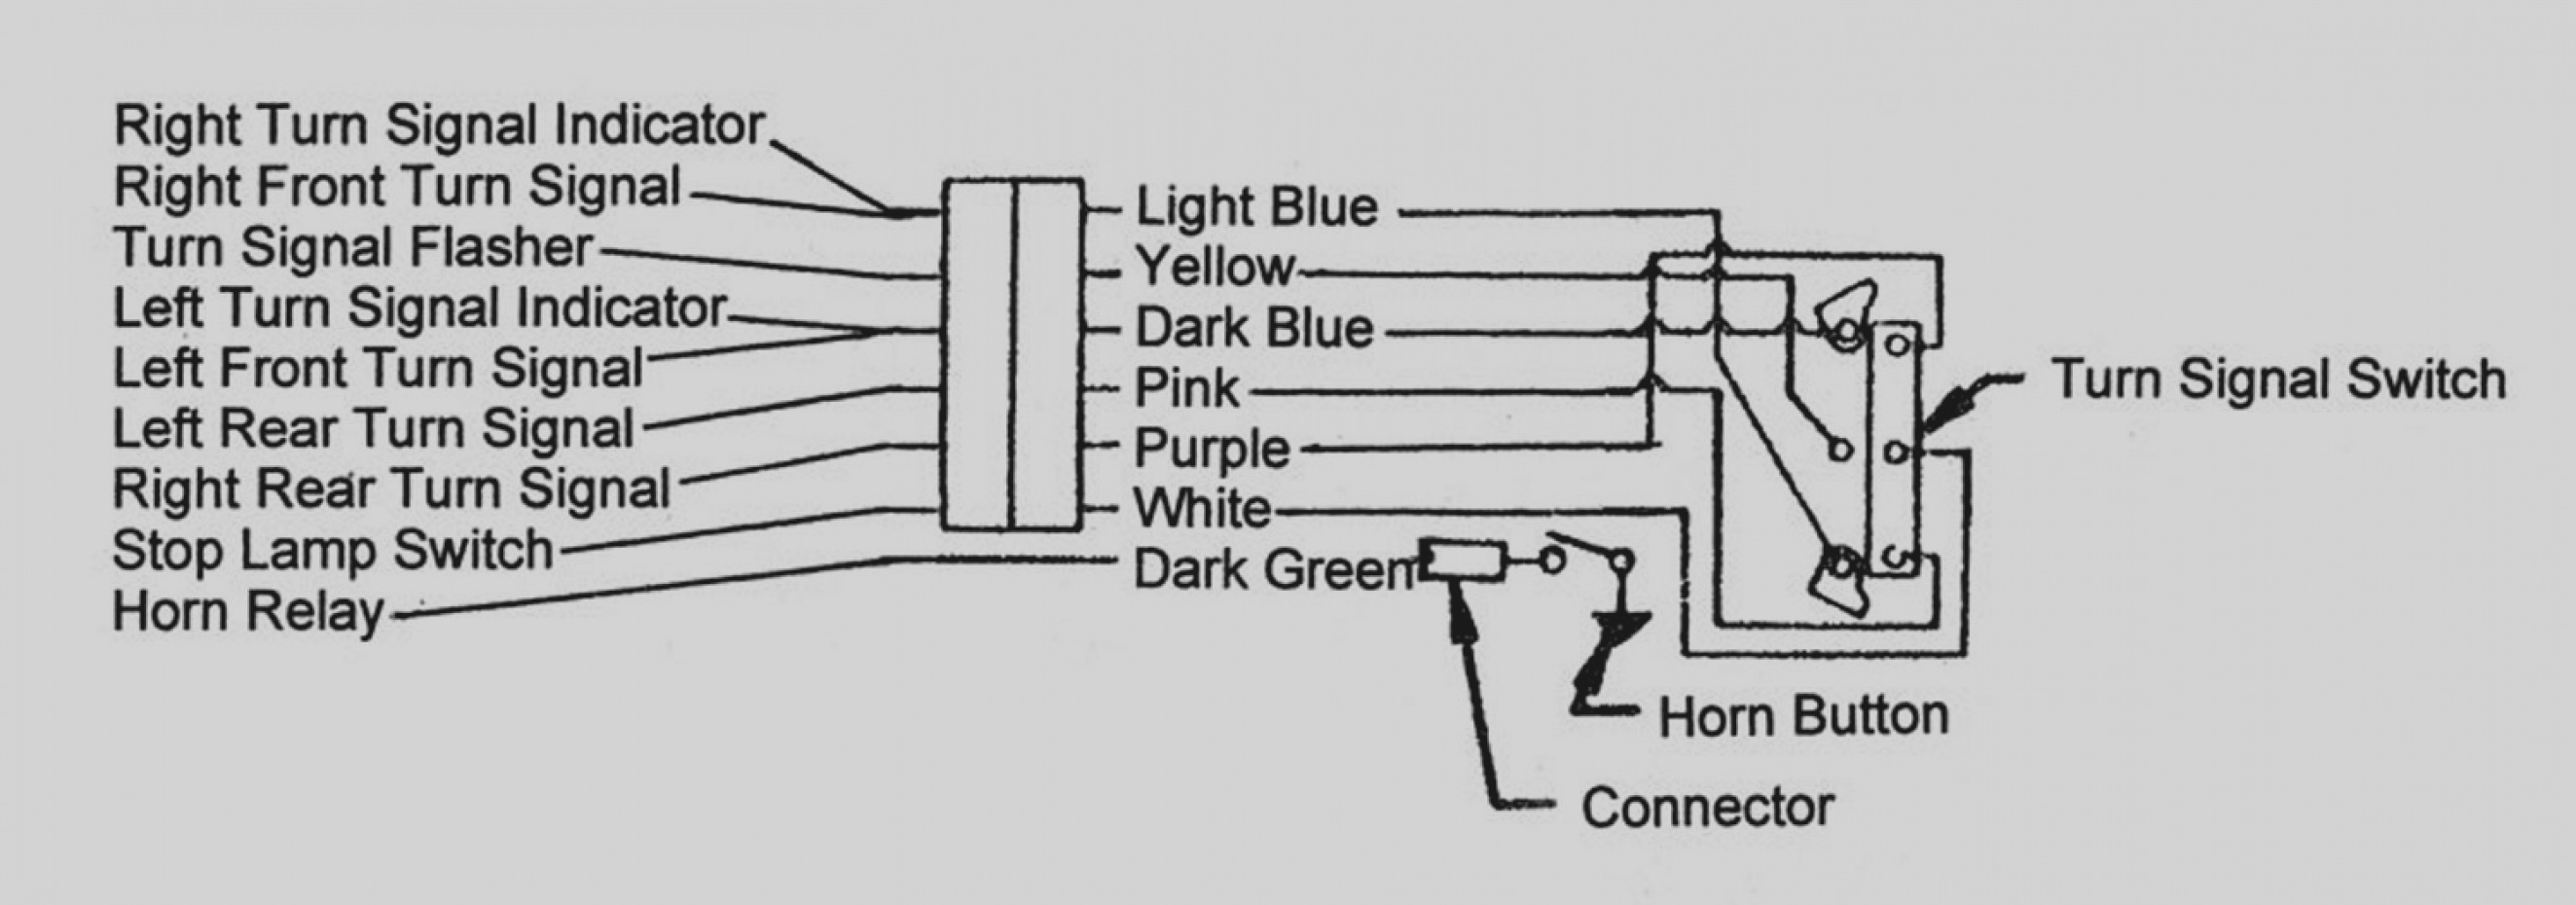 1955 Chevy Turn Signal Wiring Diagram Sample | Wiring ...